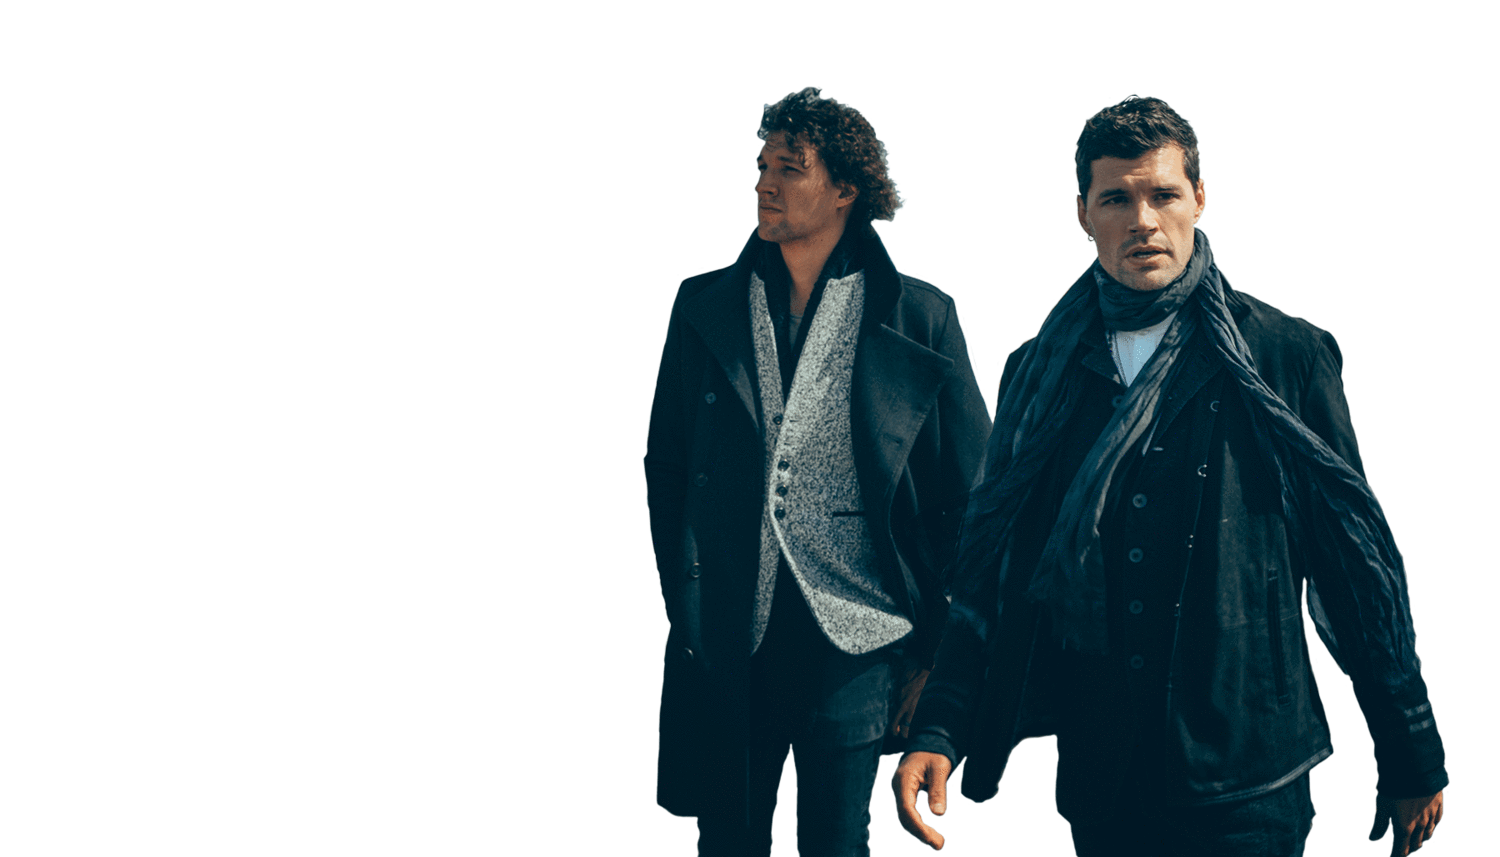 King and Country album cover